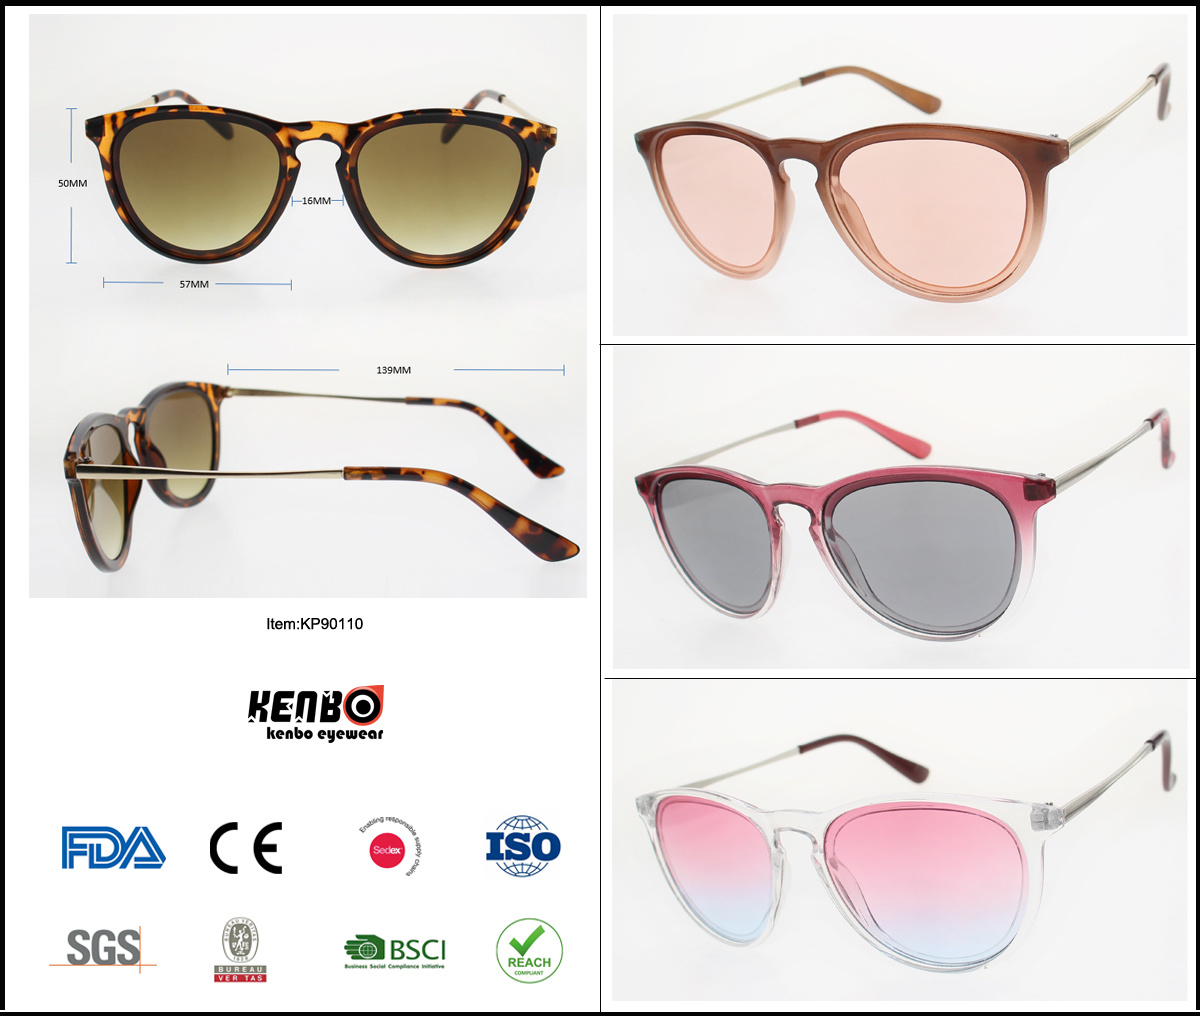 2019 New Fashion Classic Oval Plastic Sunglasses, Copy Popular Brand Eyewear, Accessory, Item No. Kp90110 pictures & photos